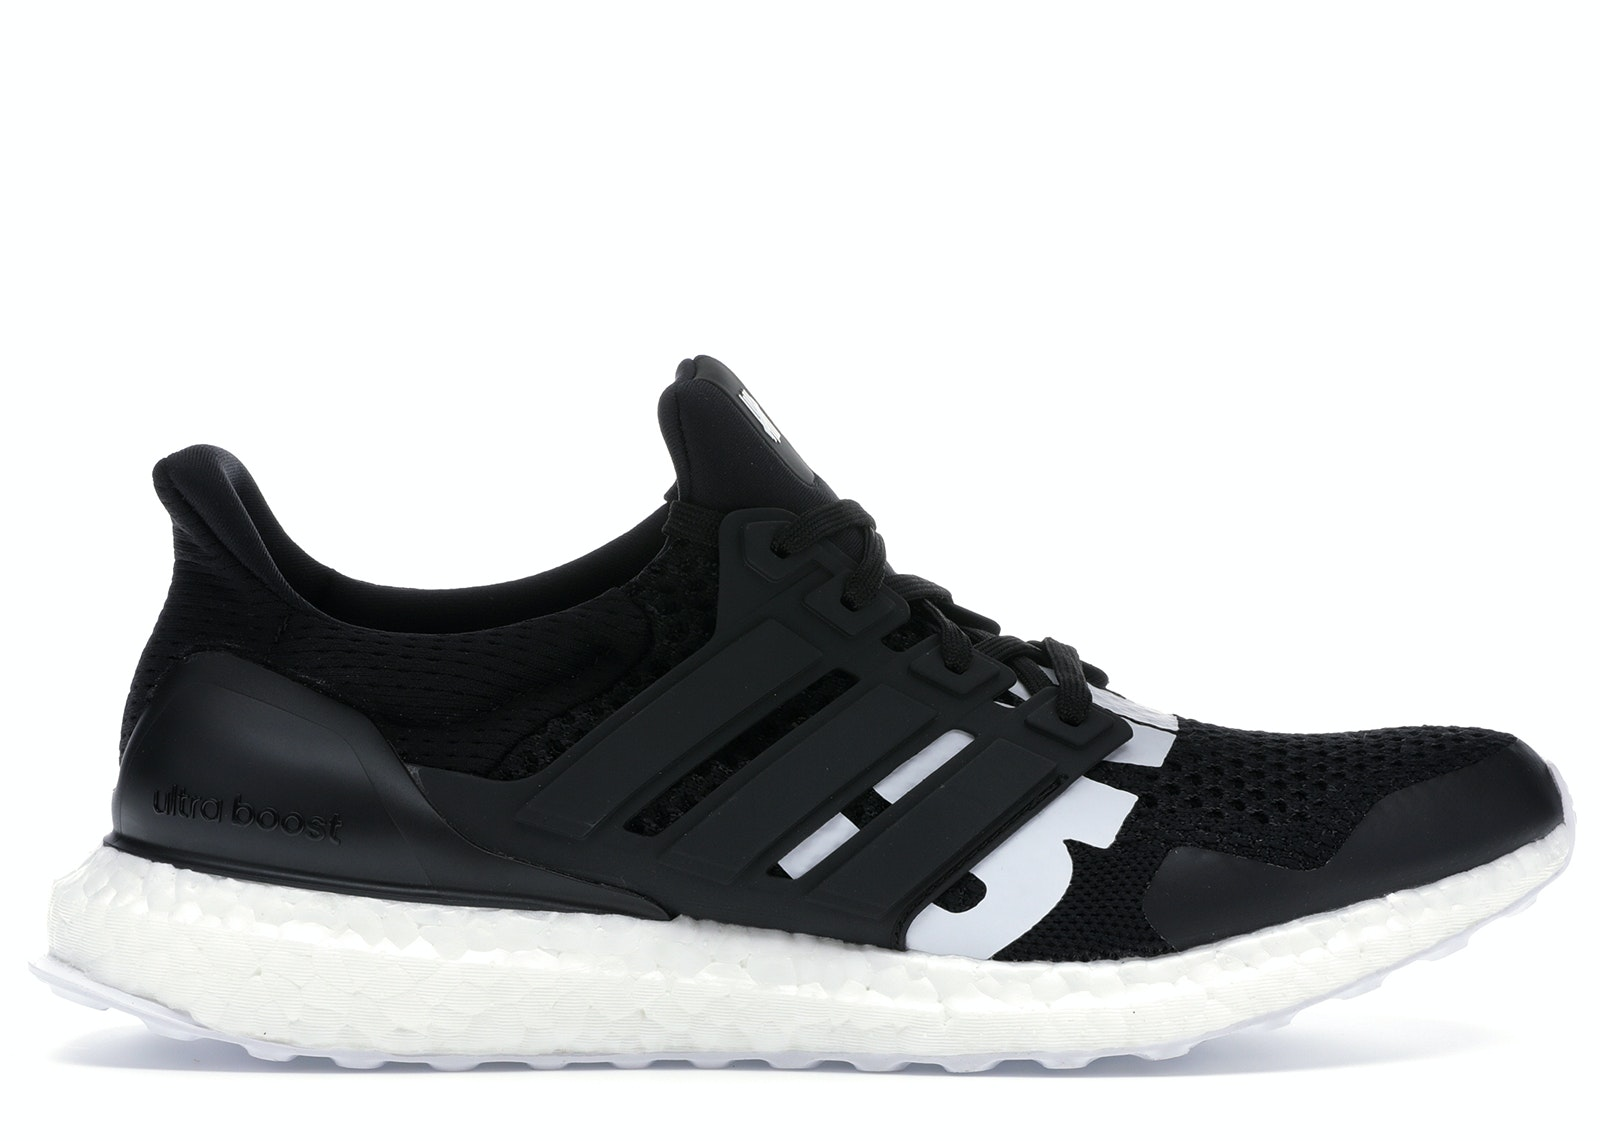 adidas Ultra Boost 1.0 UNDFTD Black